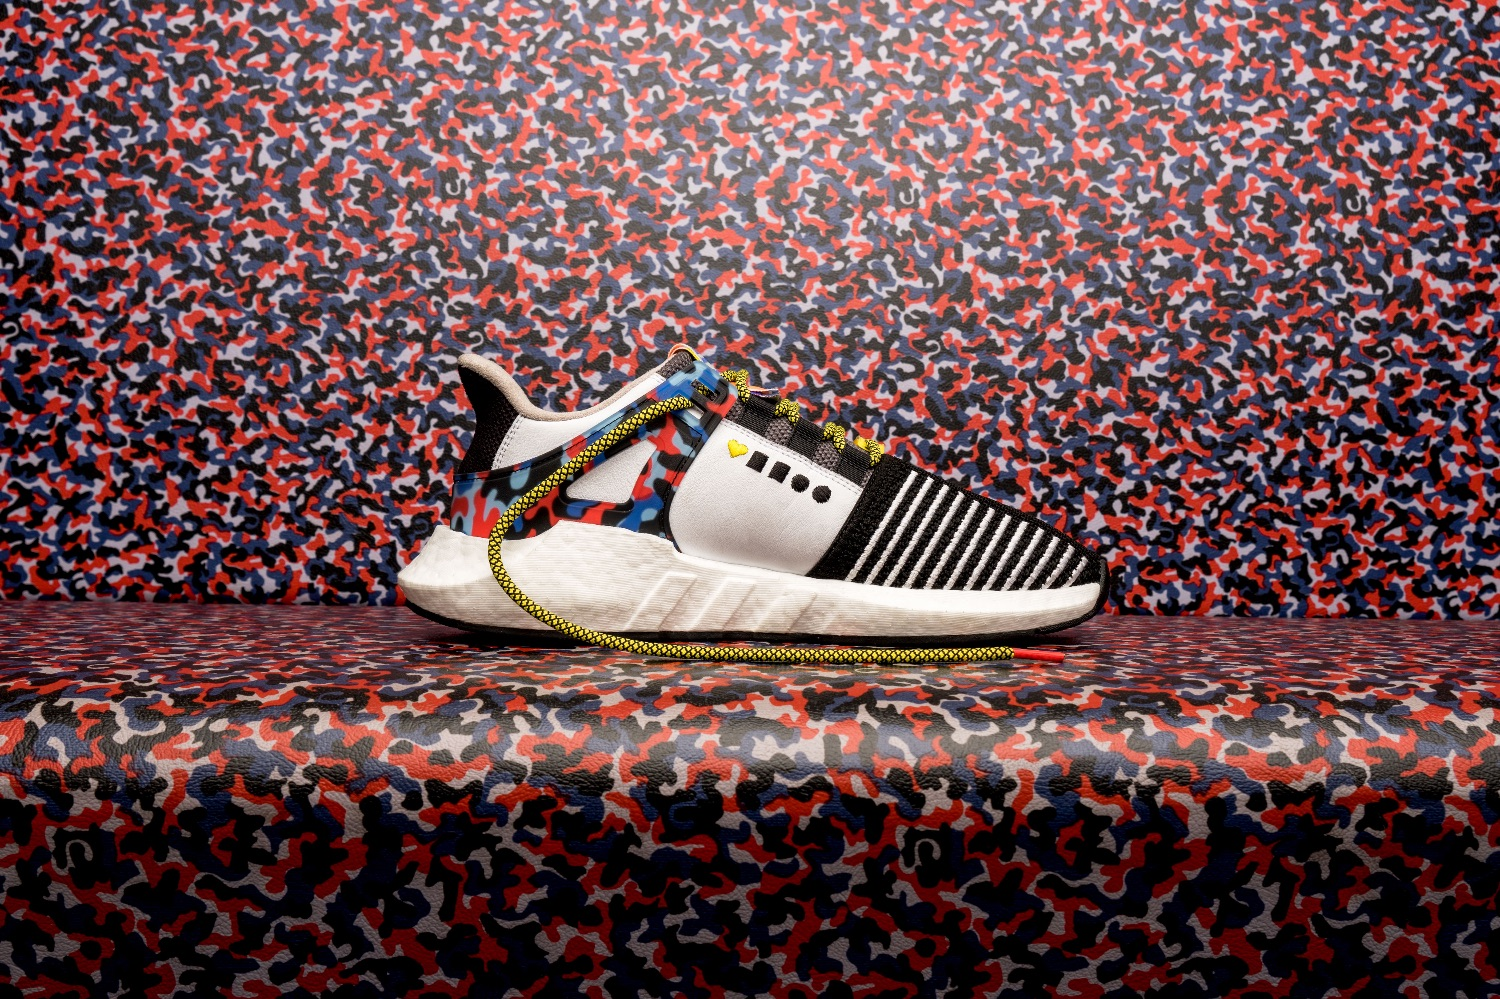 1_Adidas_EQT Support 93:Berlin BVG pattern_Inspirationist